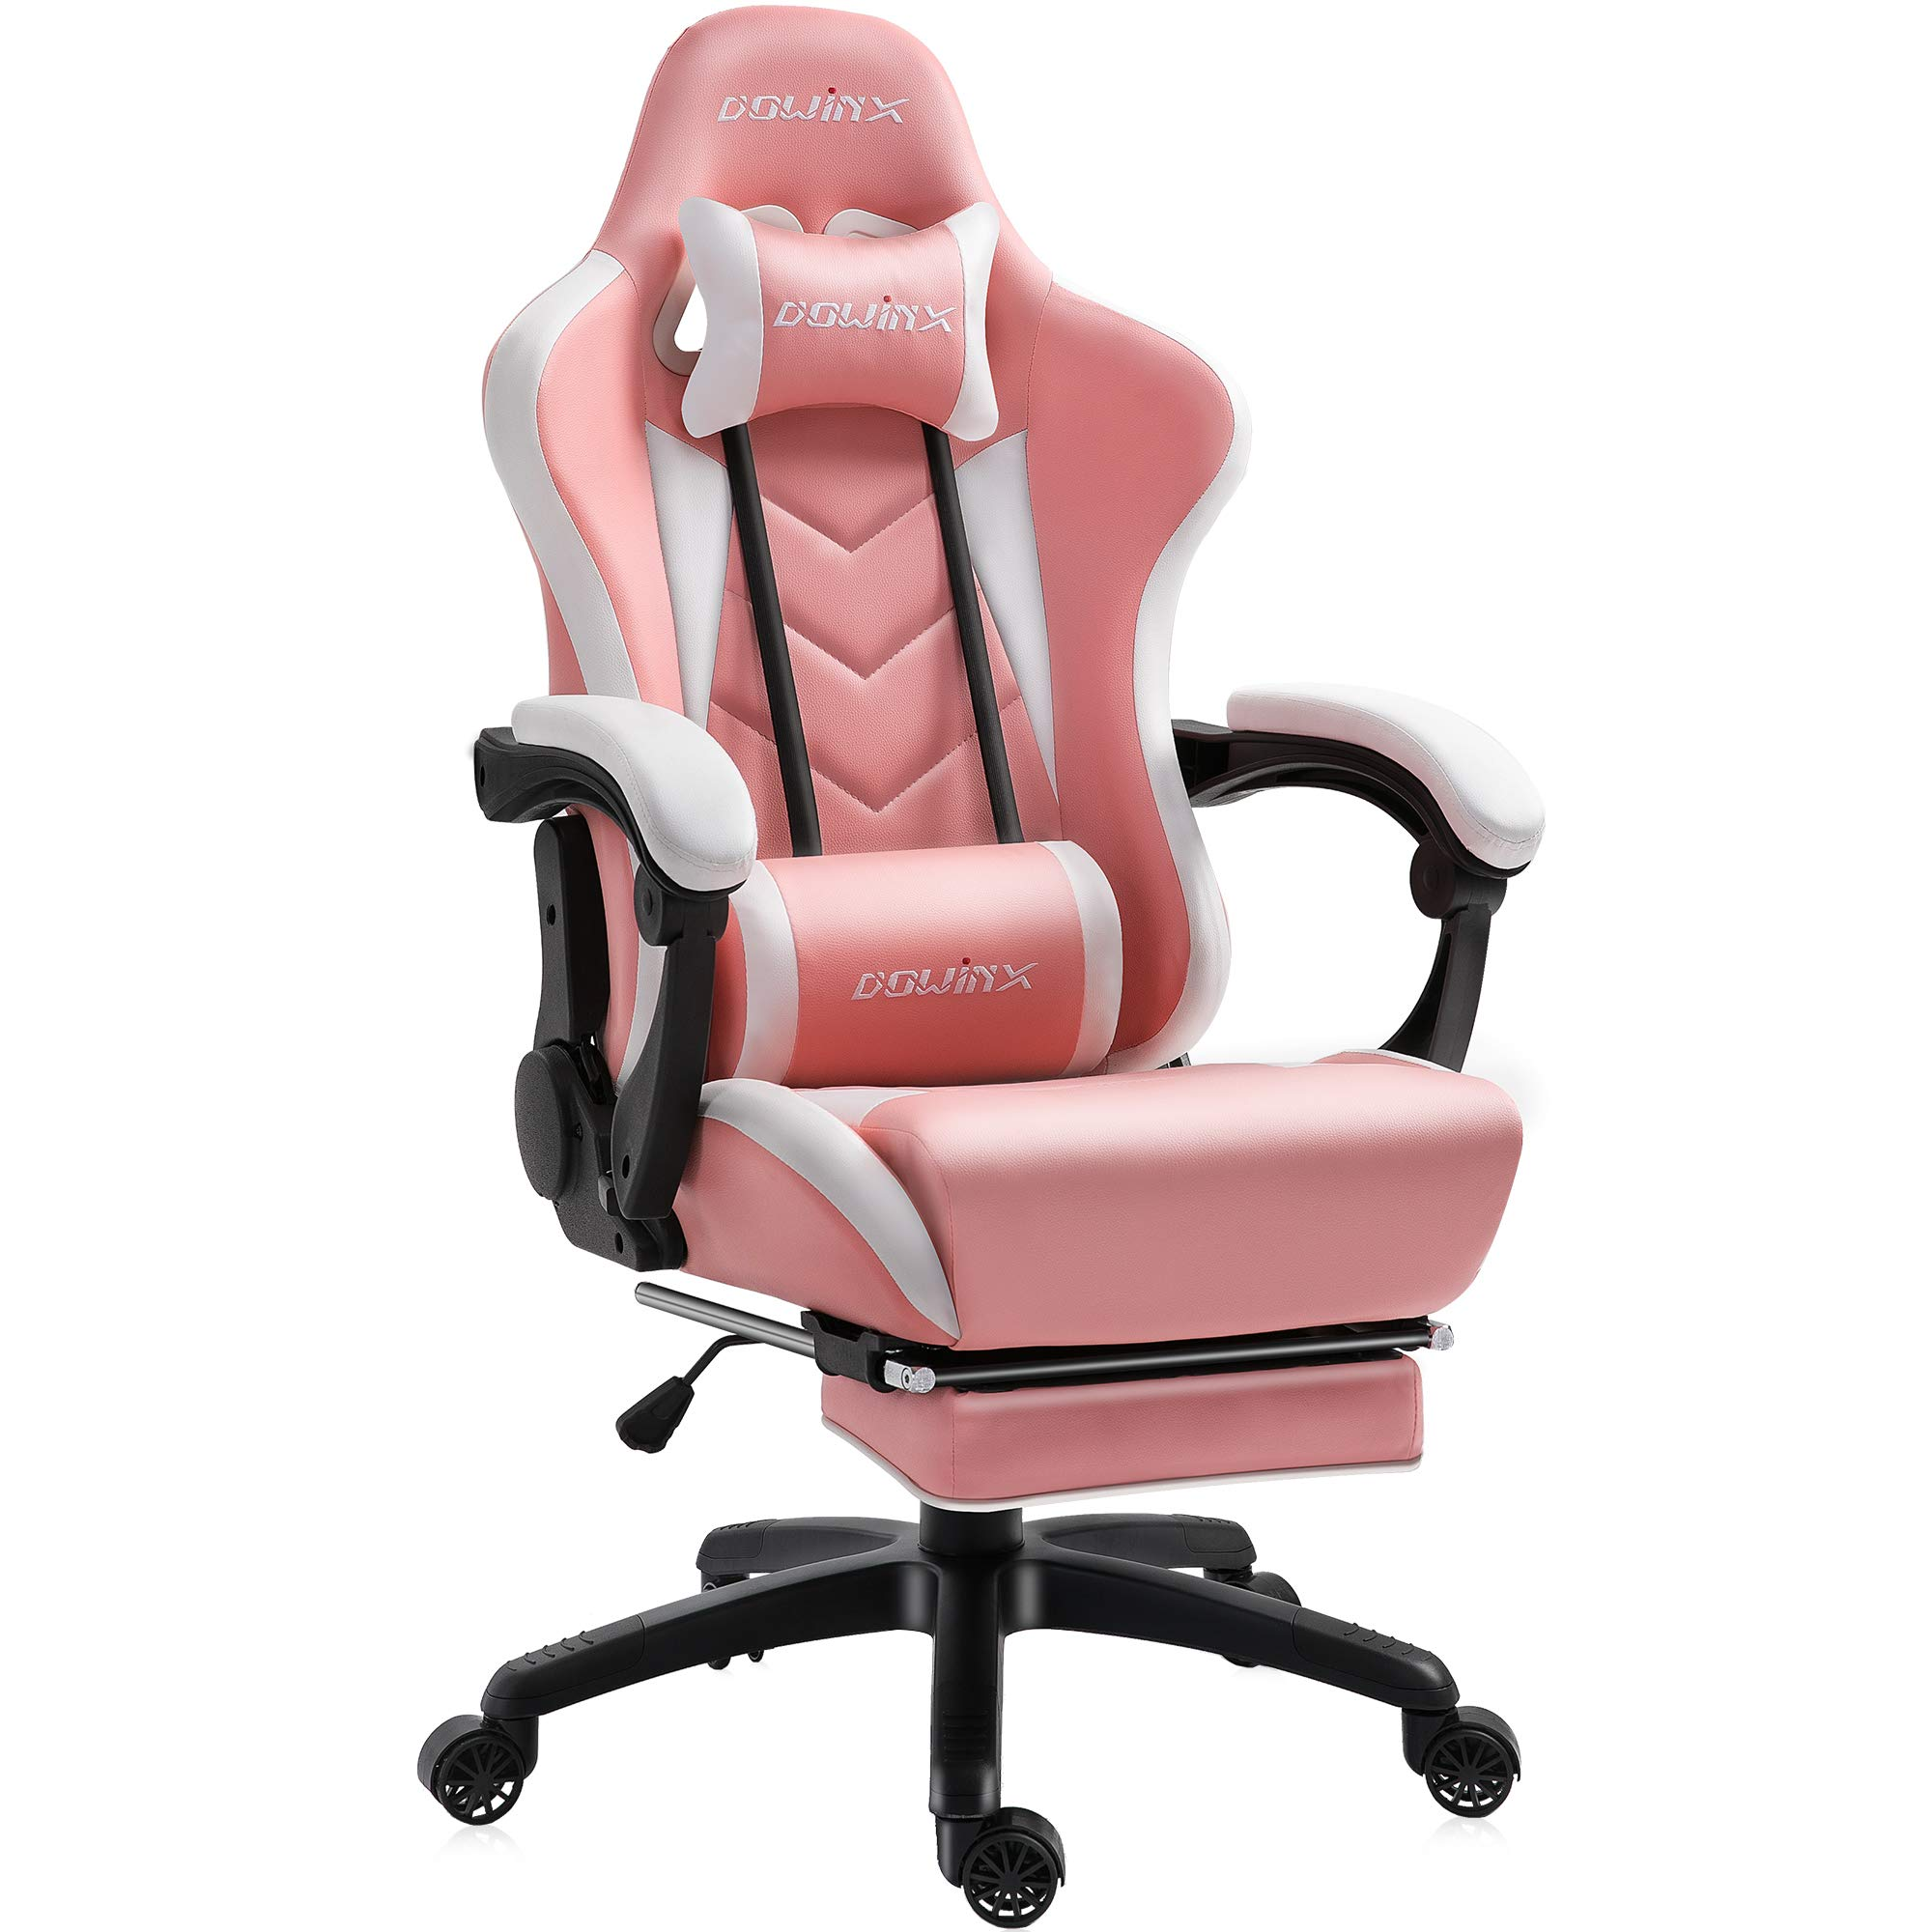 Dowinx Gaming Chair Ergonomic Racing Style Recliner with ...